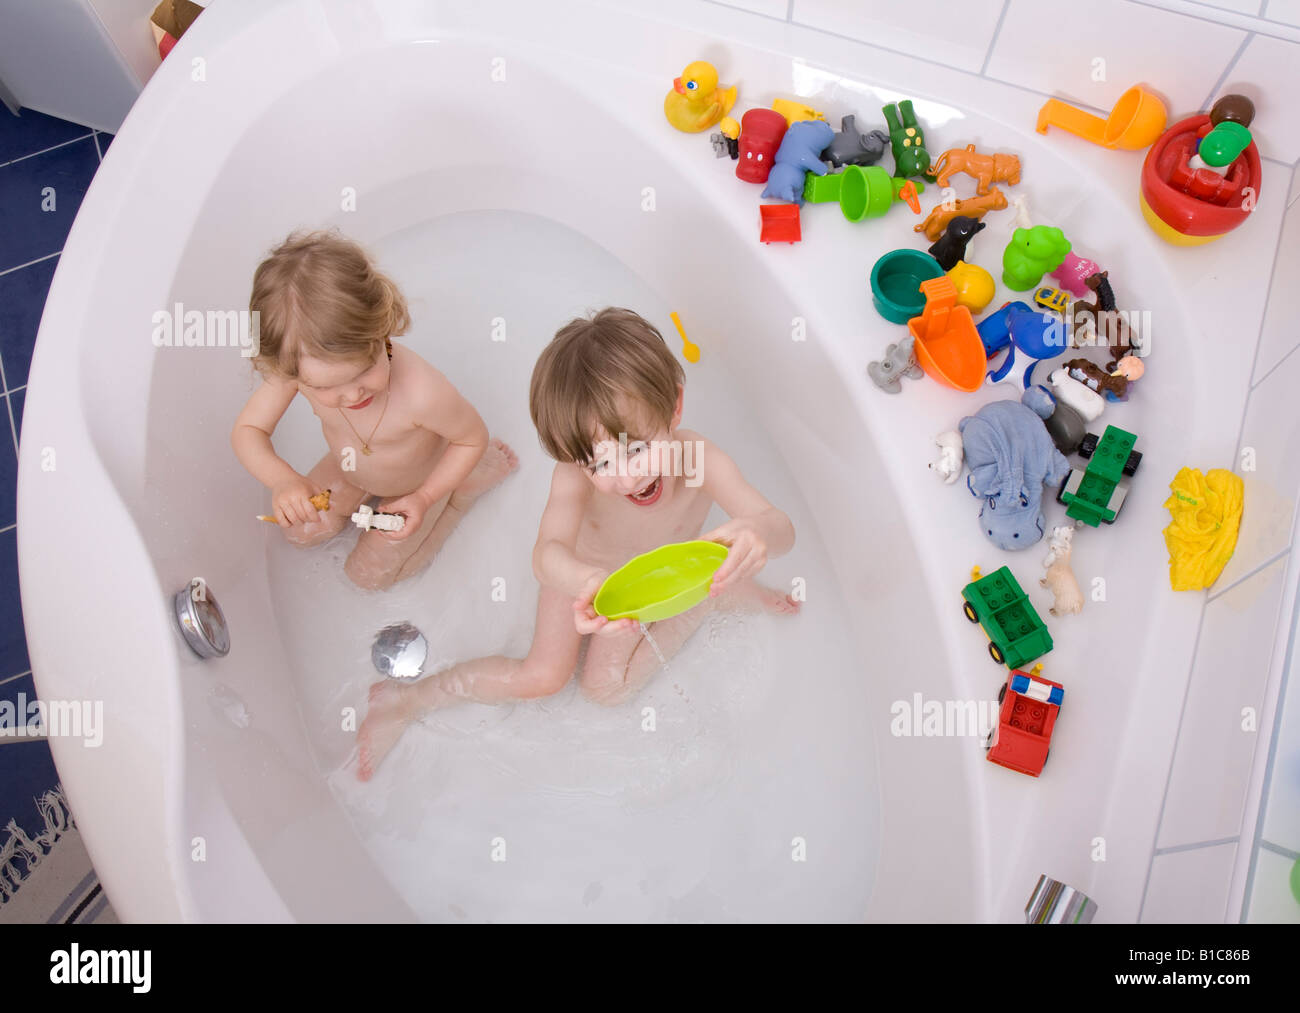 Little Children Playing In Bath Tub Stock Photo Royalty